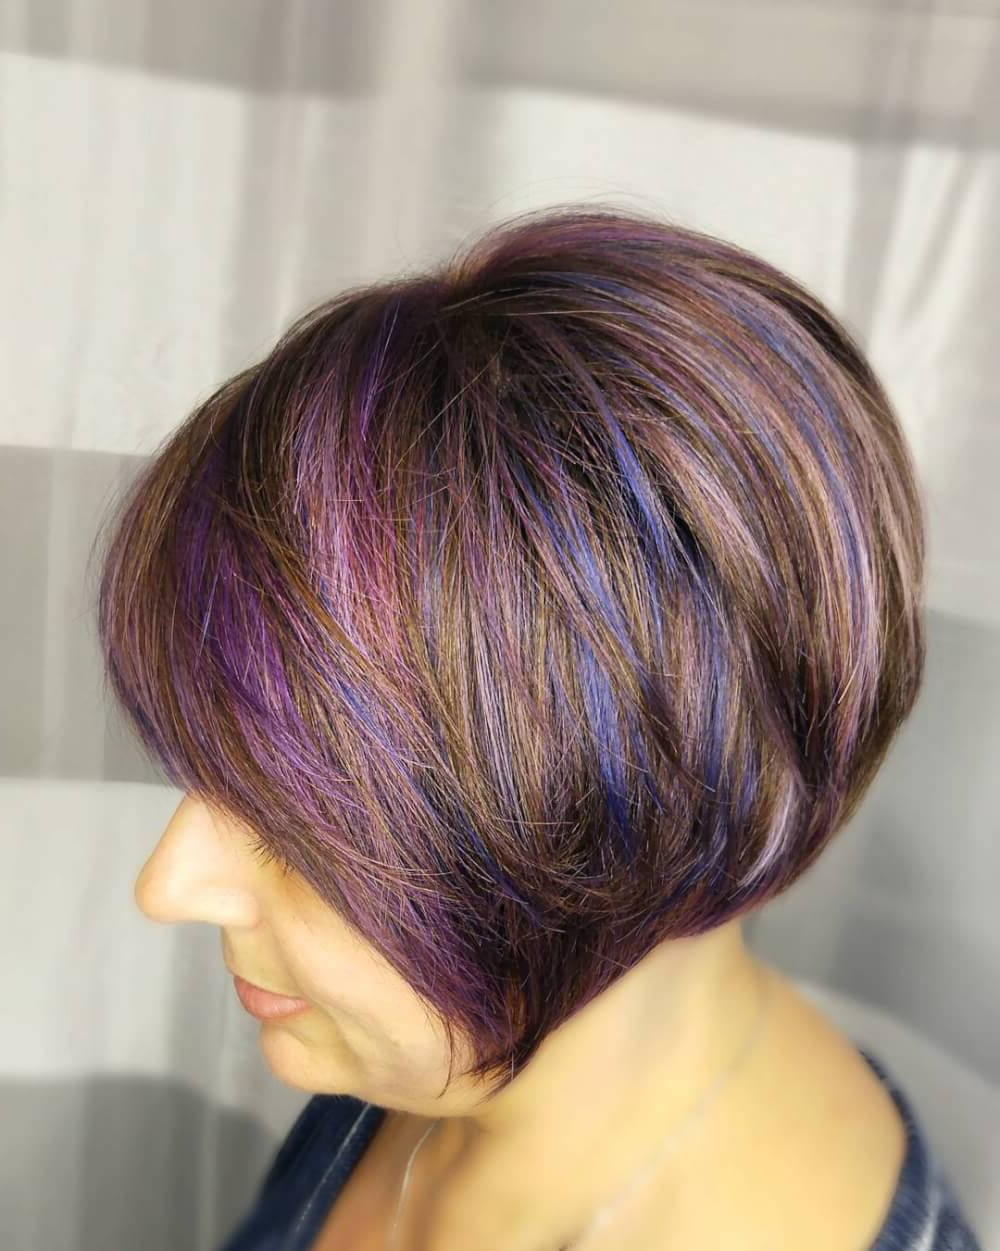 39 Classiest Short Hairstyles For Women Over 50 Of 2018 With Regard To Short Women Hairstyles Over  (View 11 of 25)